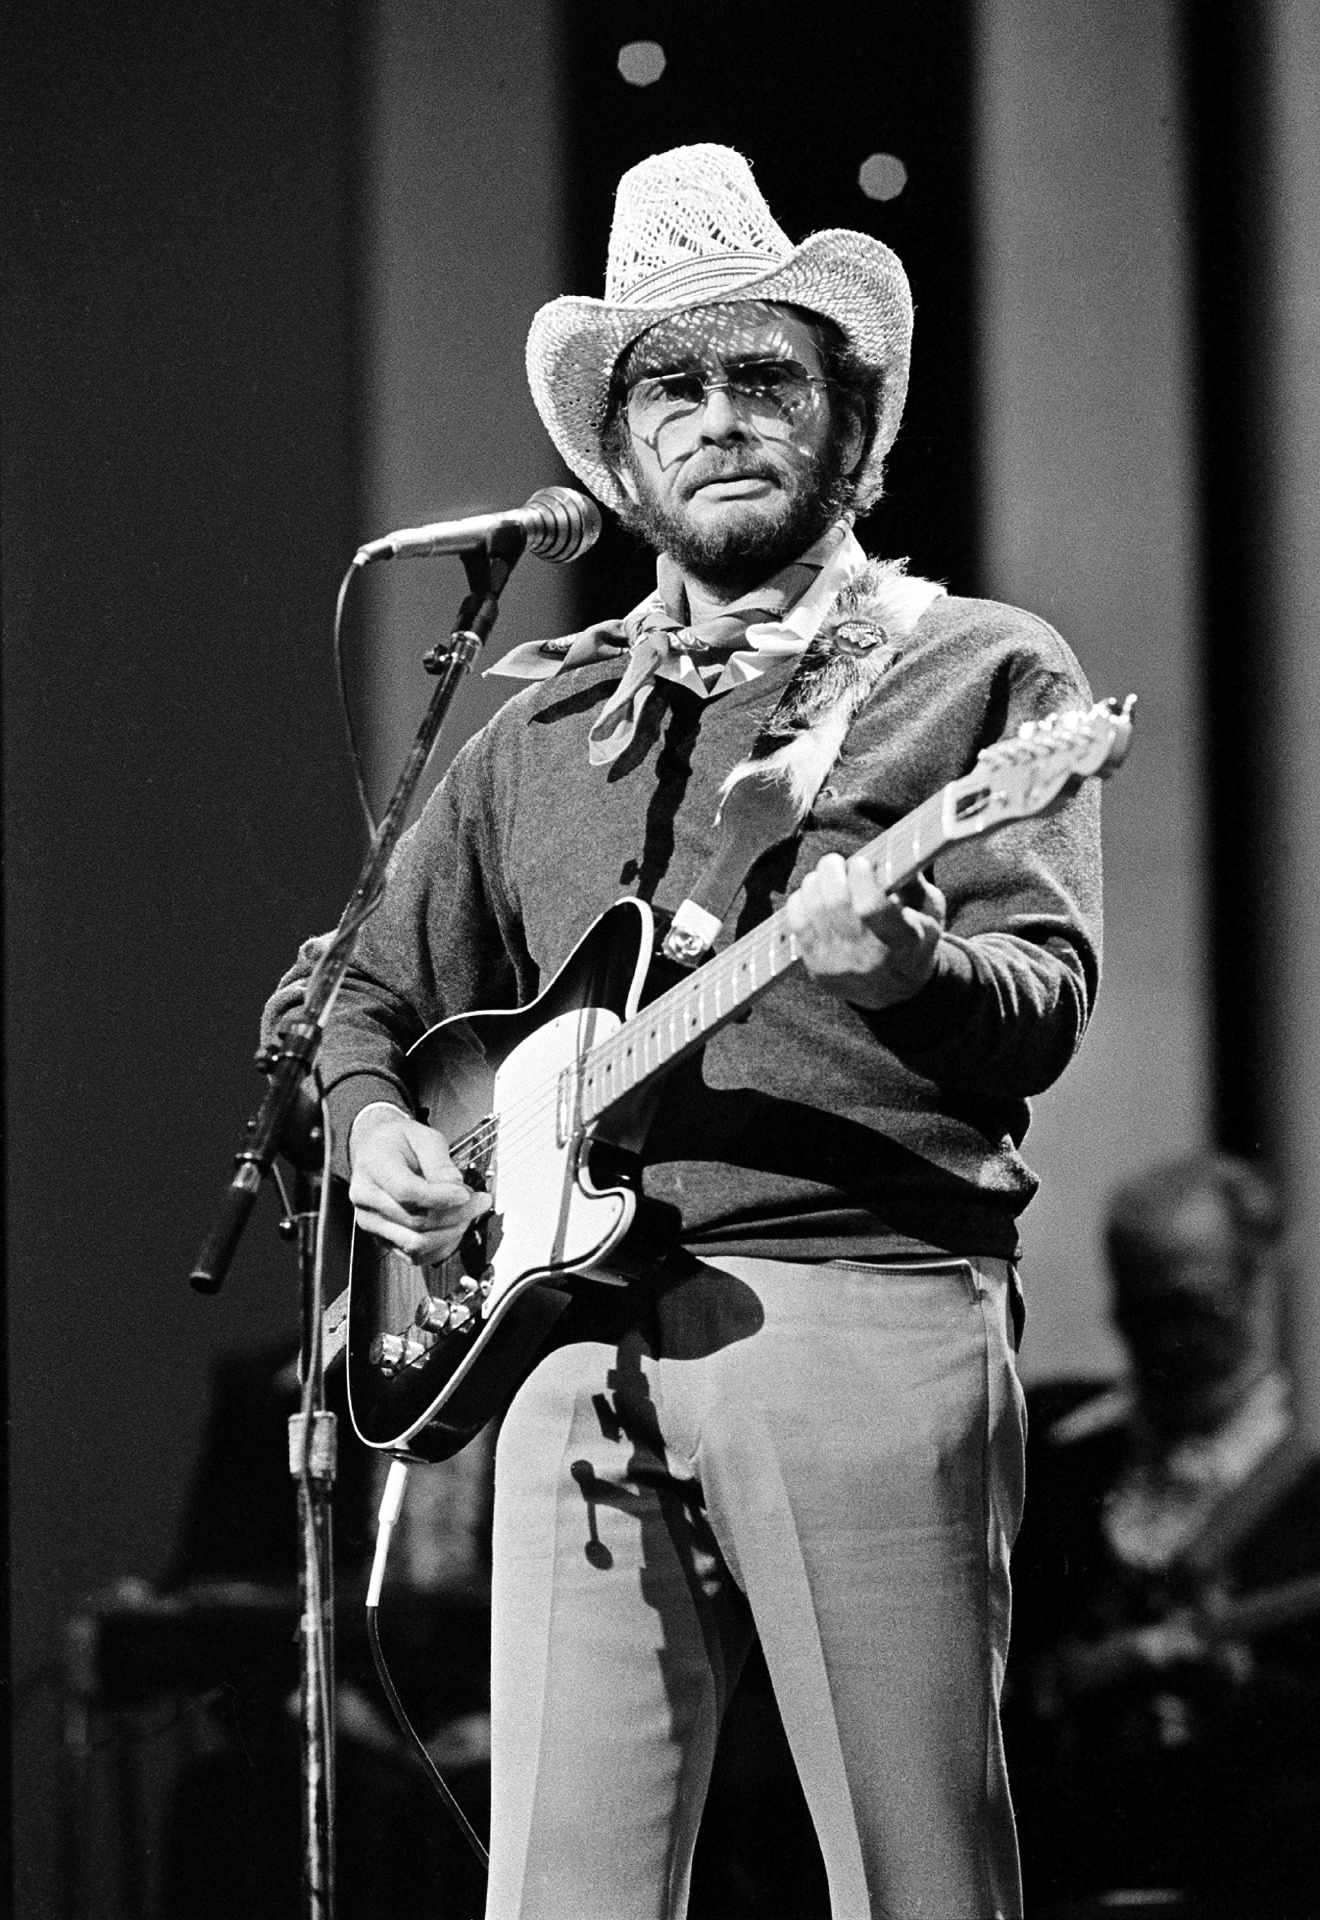 FILE - In this Oct. 10, 1983 file photo, Merle Haggard performs at the Country Music Association Awards in Nashville, Tenn. Haggard died of pneumonia, Wednesday, April 6, 2016, in Palo Cedro, Calif. He was 79.  (AP Photo/Mark Humphrey, File)